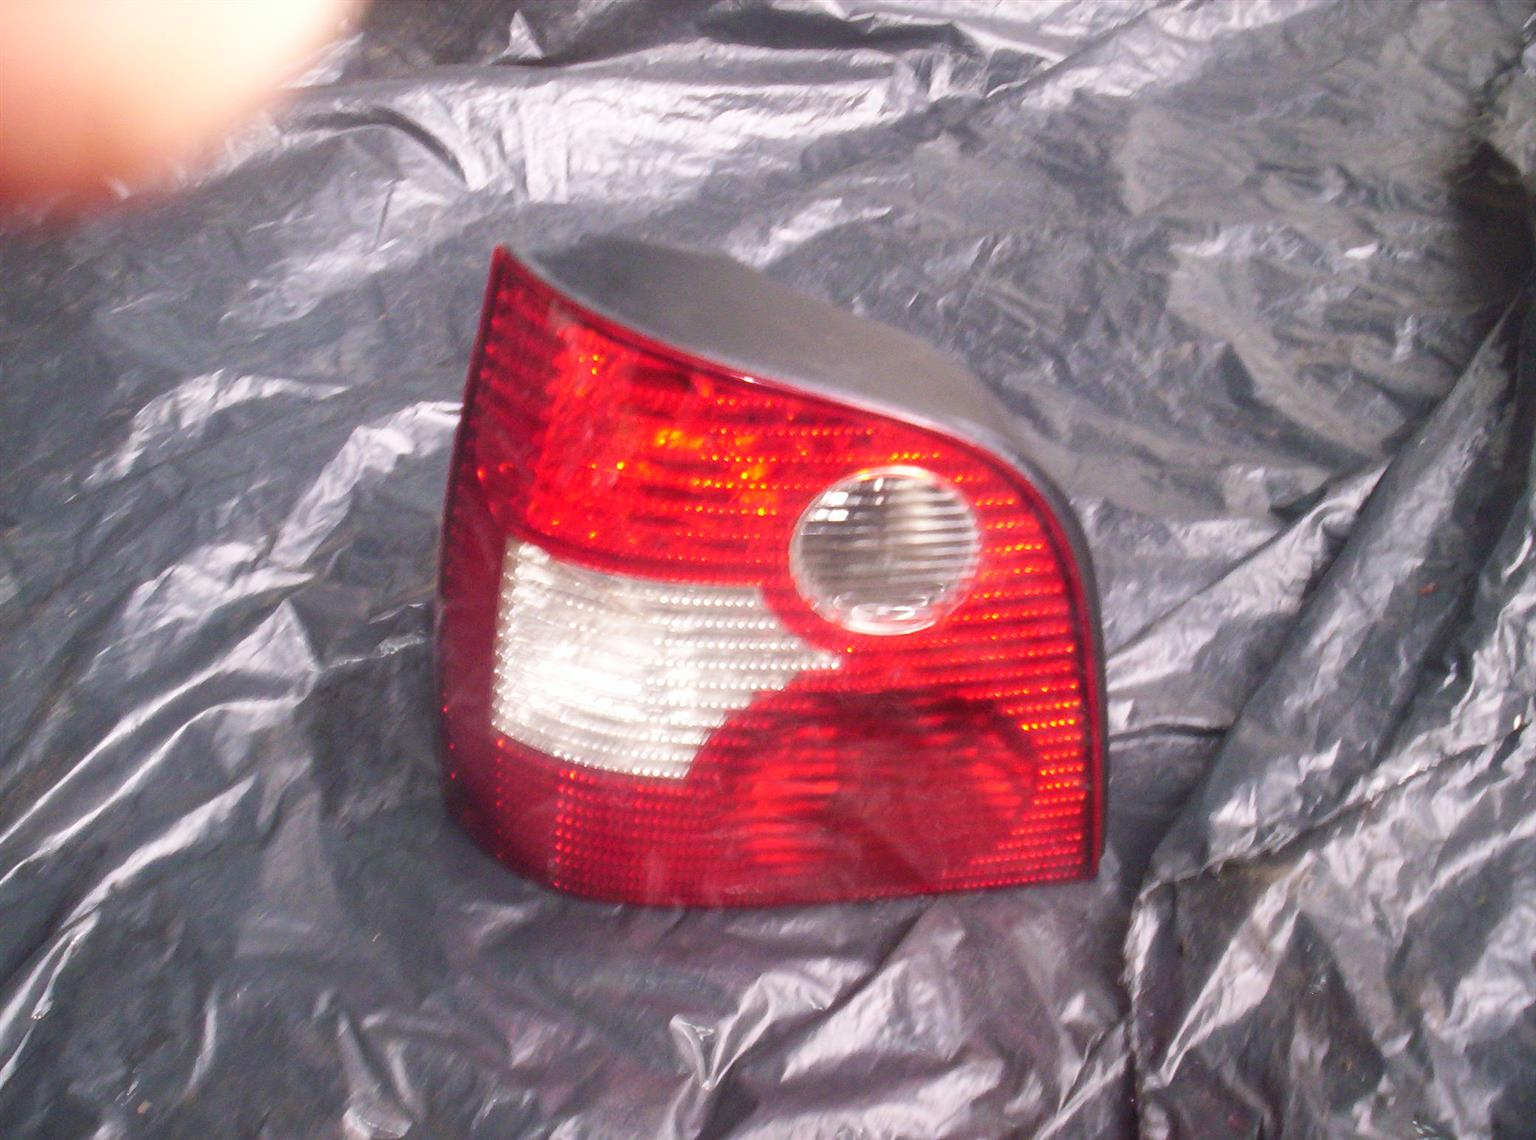 Polo left hand tail light